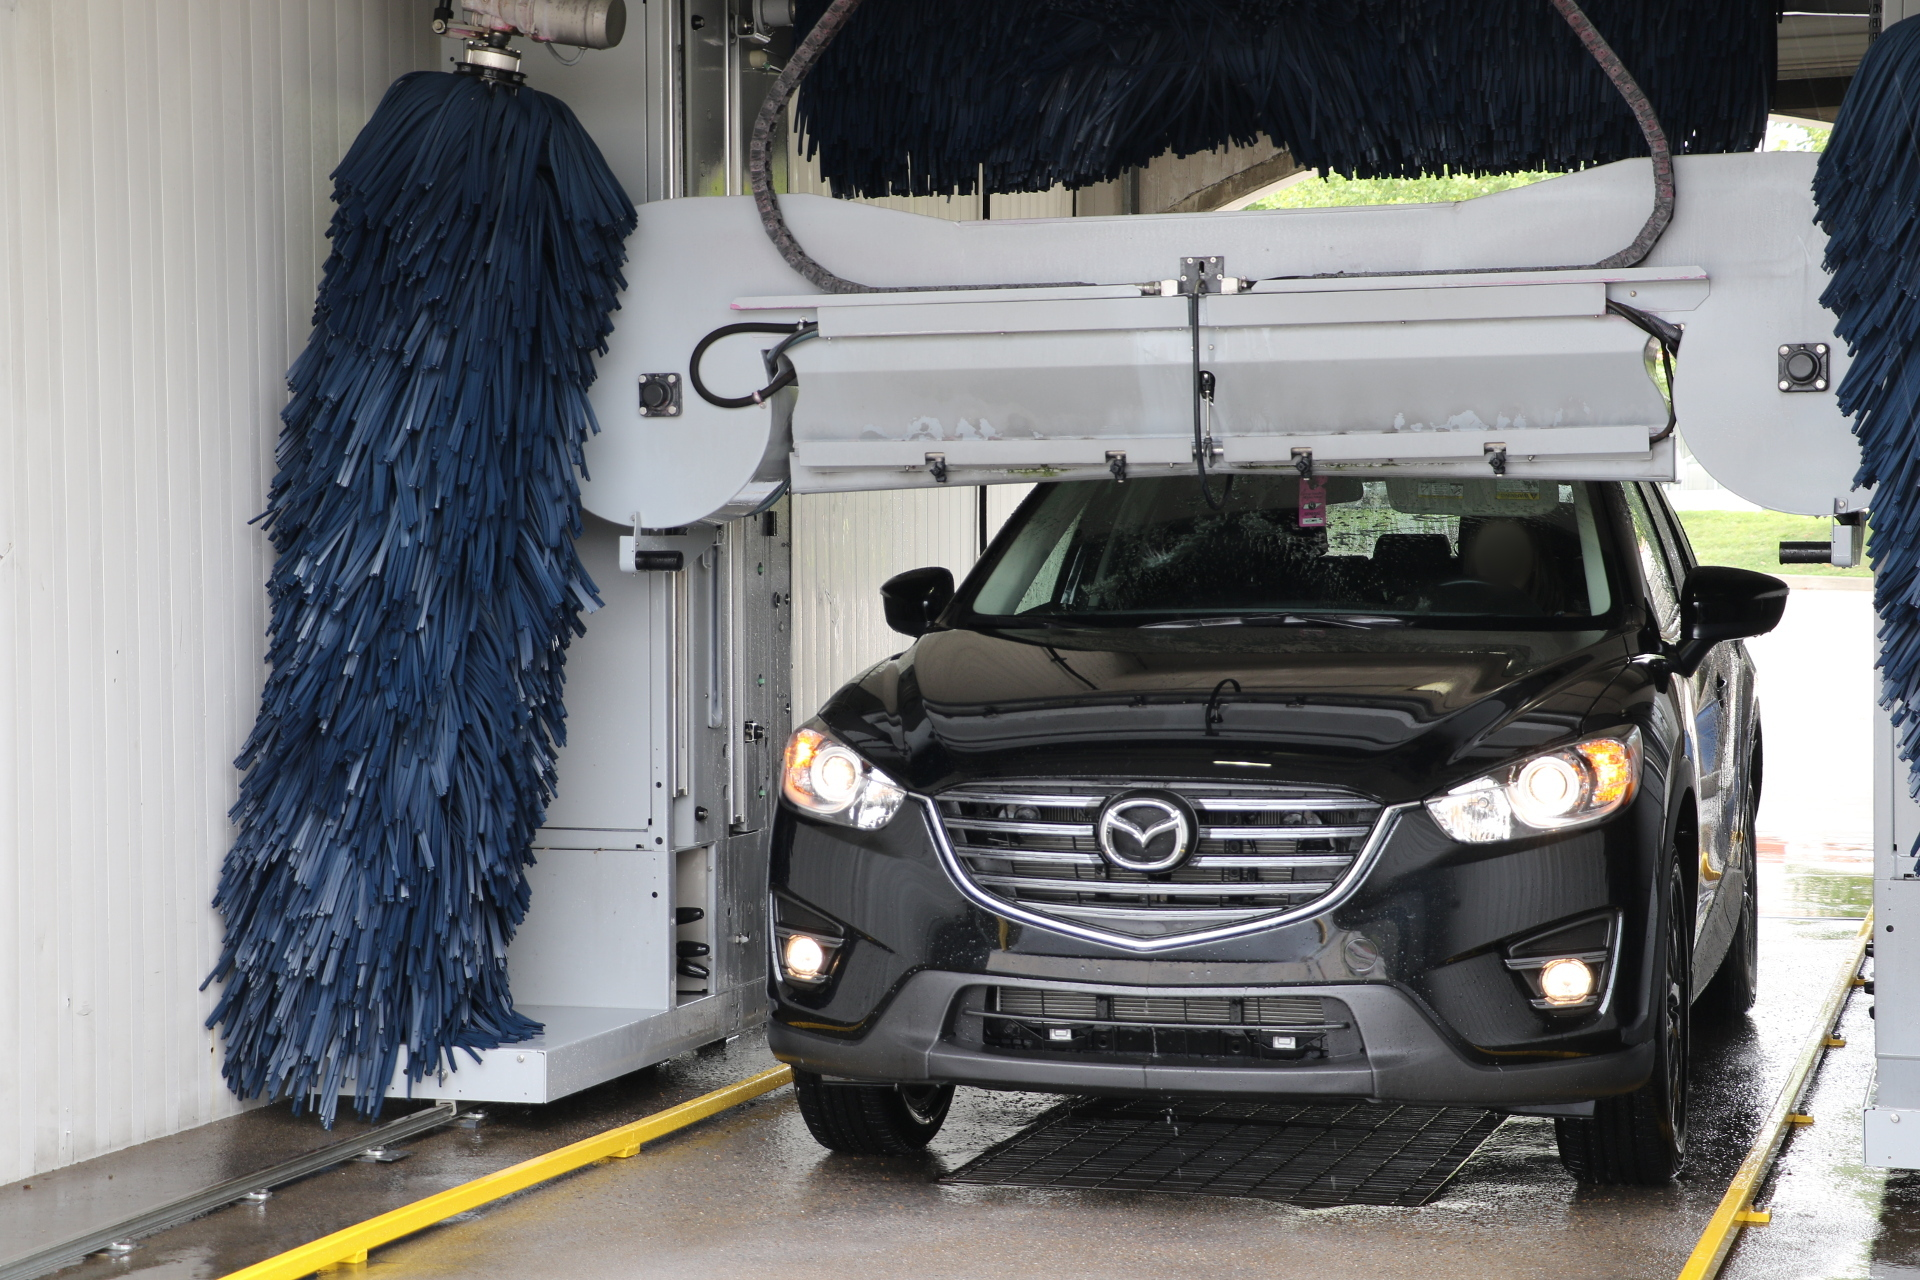 Image of the iWash car wash dryers. iWash is a car wash in the Brentwood and Nashville area.